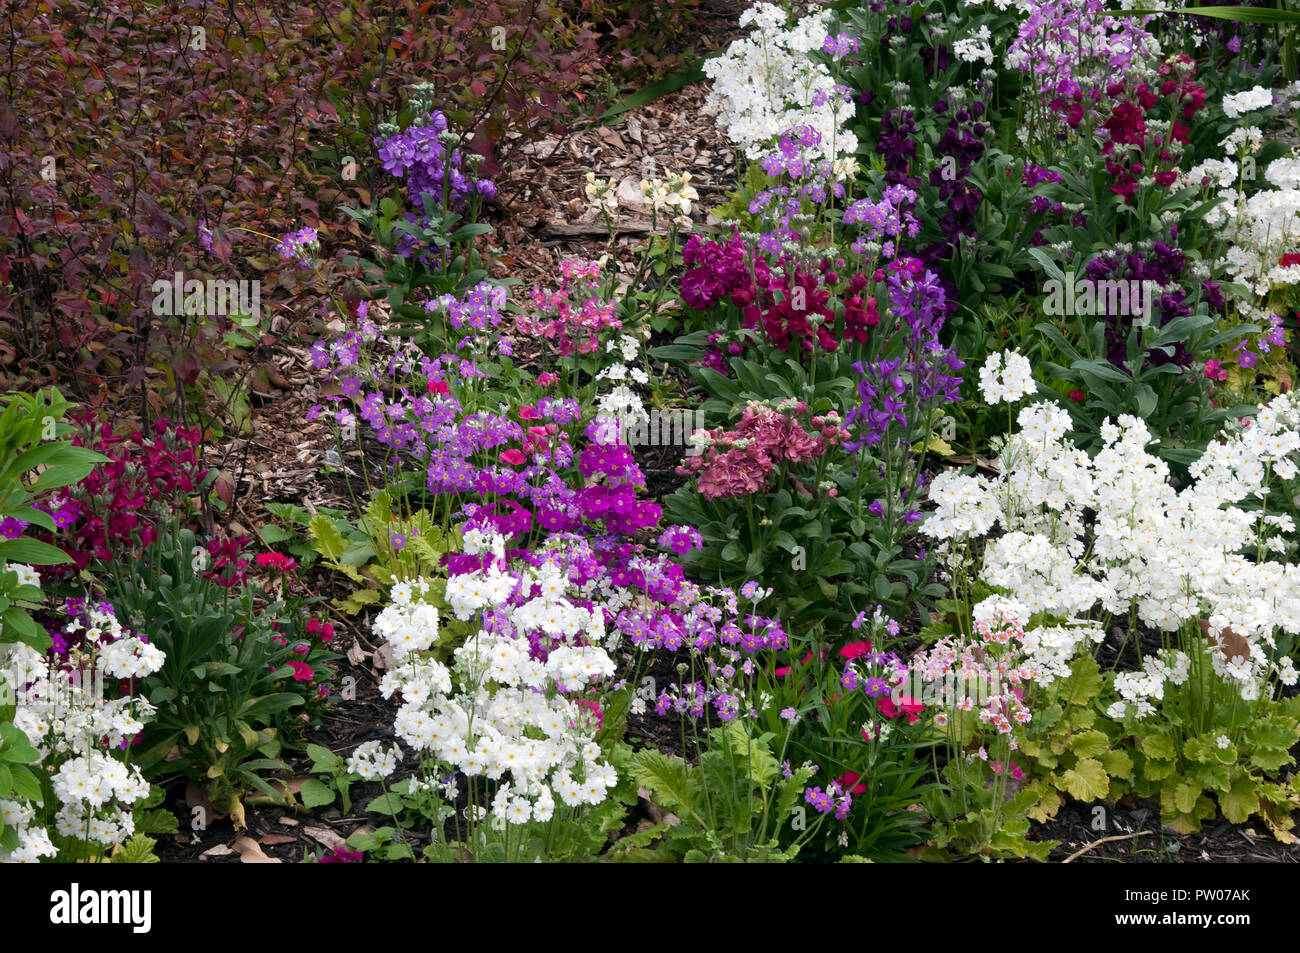 Sydney Australia Garden Of Early Spring Flowers Stock Photo